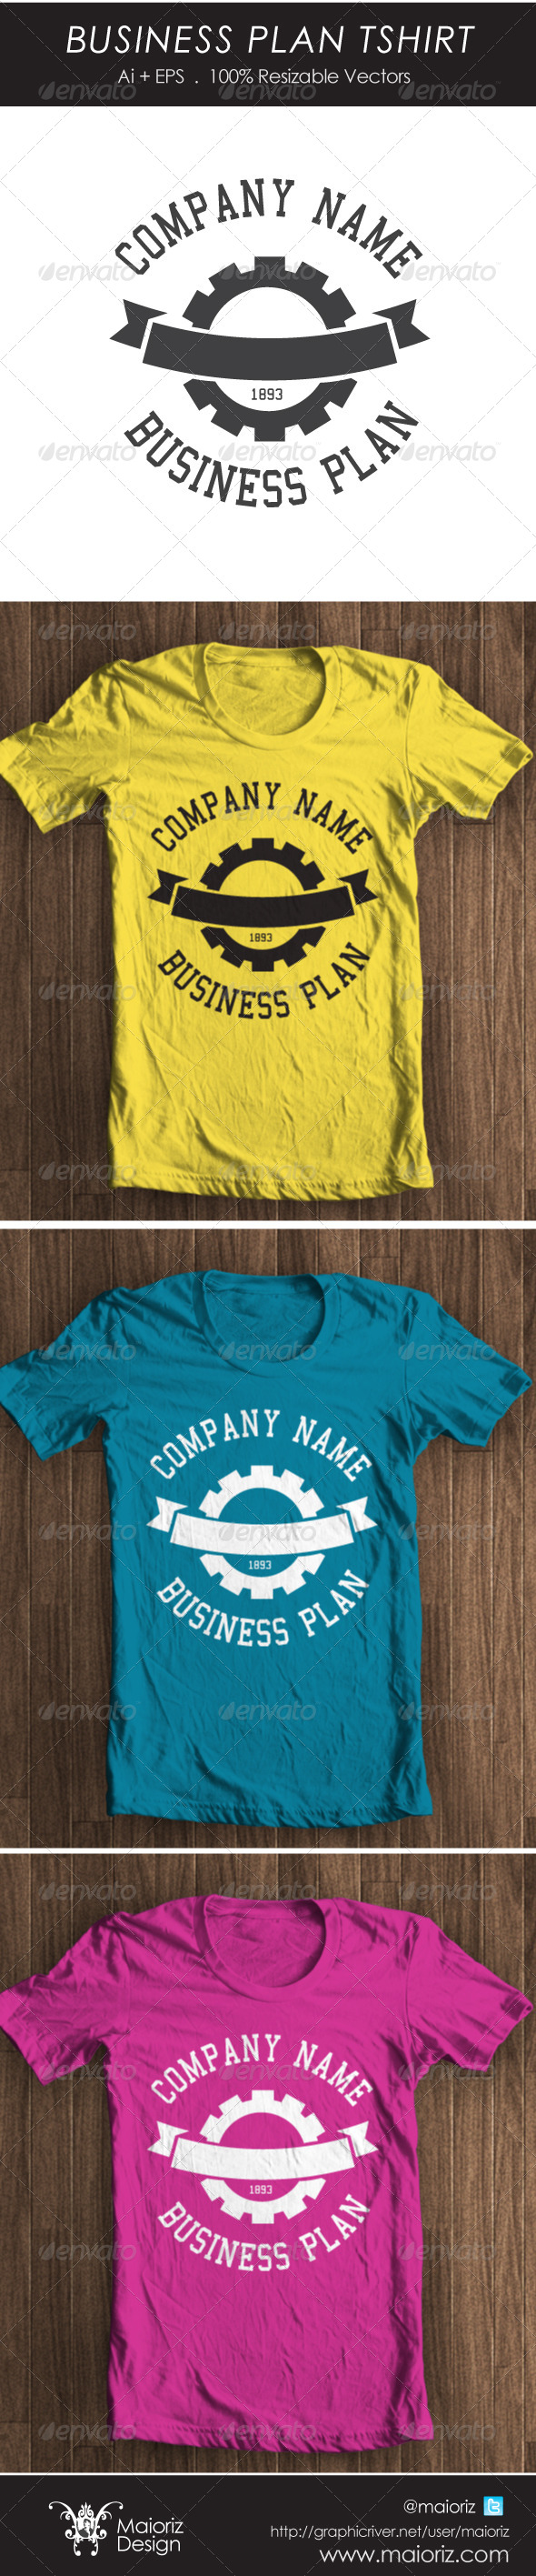 GraphicRiver Business Plan Tshirt 4447824